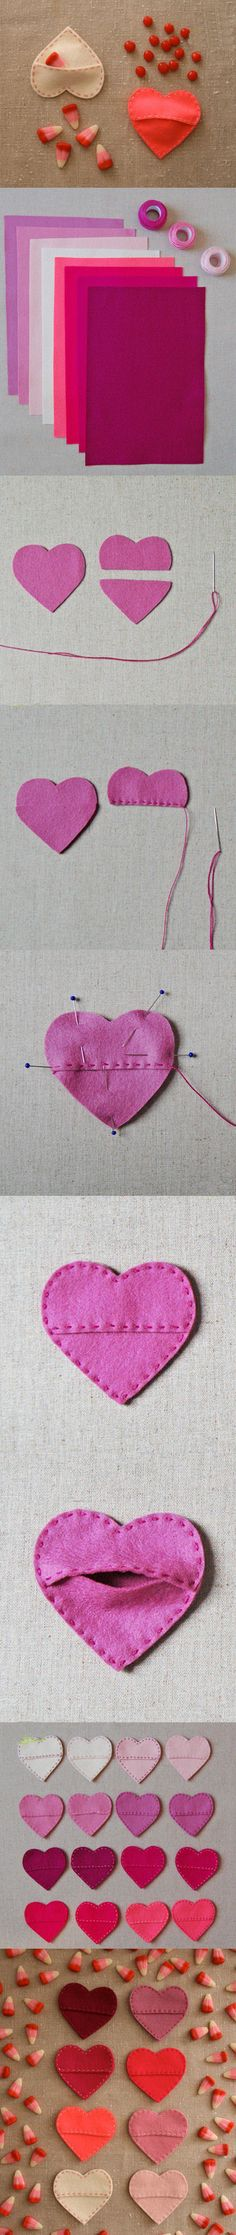 DIY Fabric Hearts diy craft crafts easy crafts craft idea diy ideas home diy easy diy home crafts diy craft diy hearts craft heart home craft